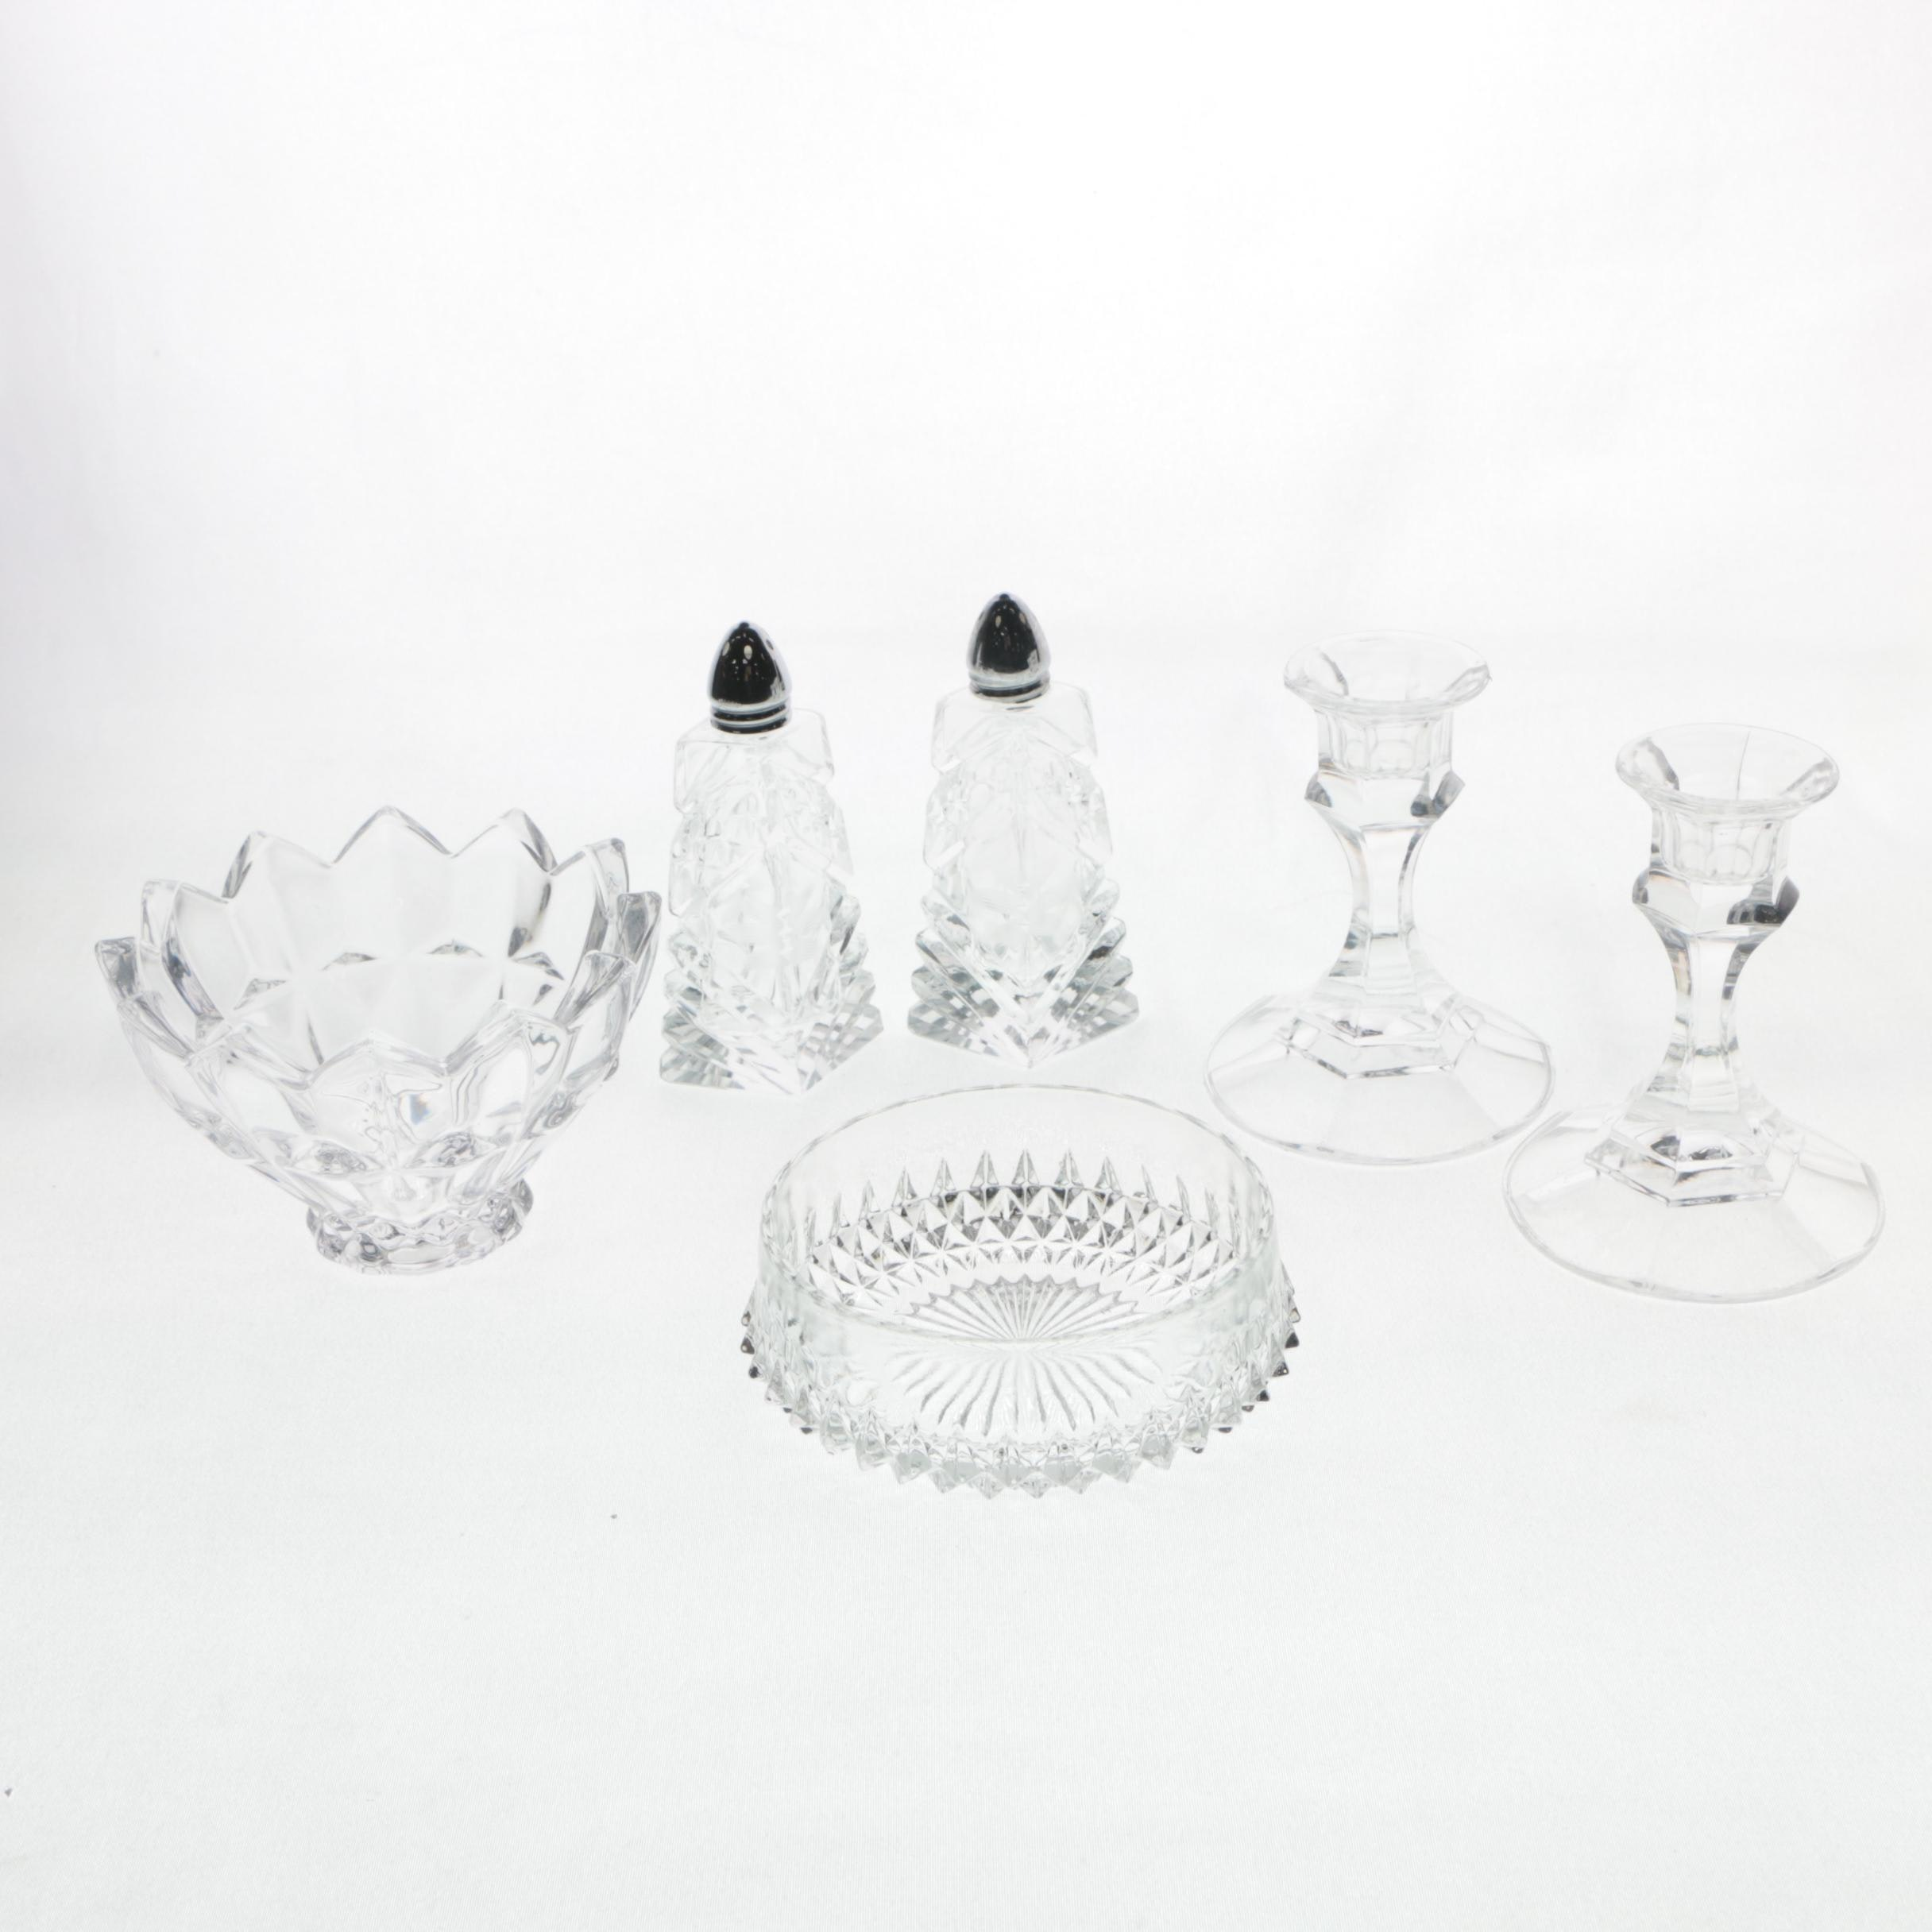 Crystal Candlesticks, Spice Shakers, and Bowls